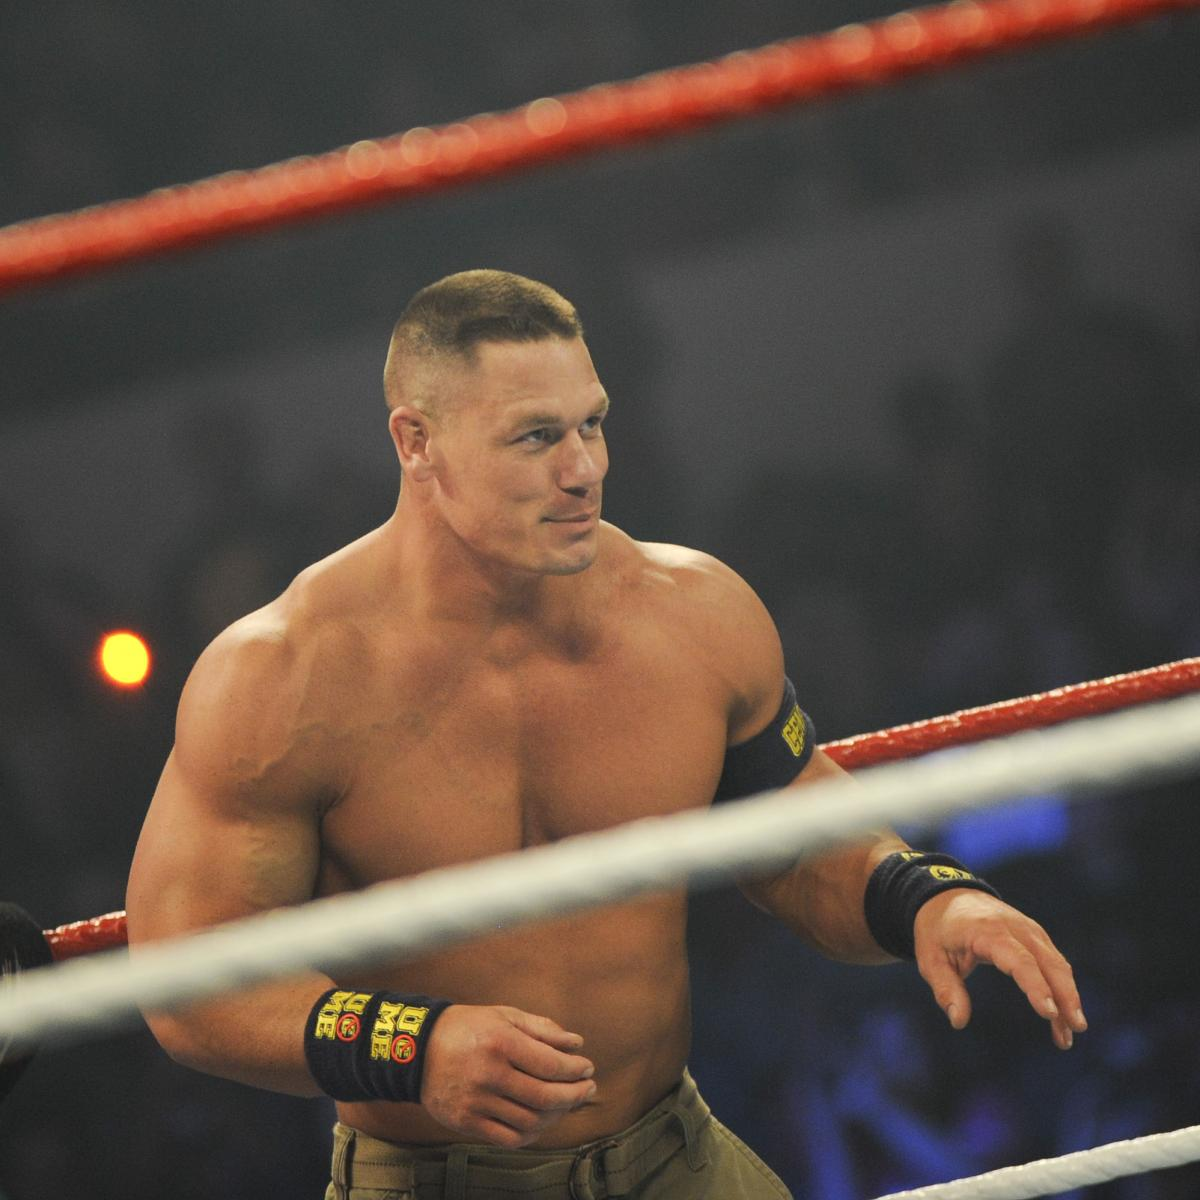 John Cena S Upcoming Wwe Return A Chance To Legitimize League Of Nations Bleacher Report Latest News Videos And Highlights